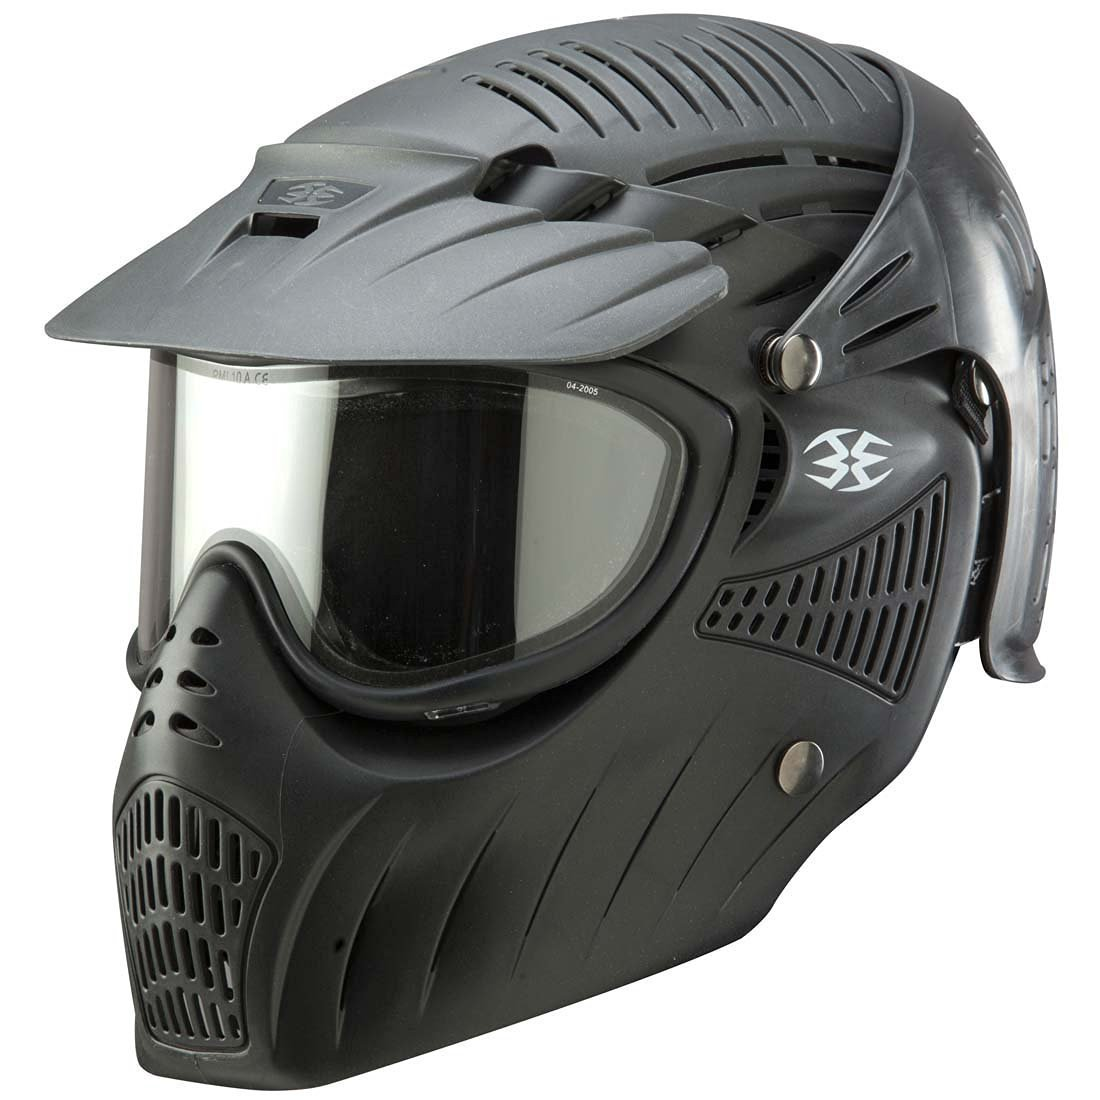 Empire Extreme Rage X-Ray V2.1 Thermal PROtector Goggle